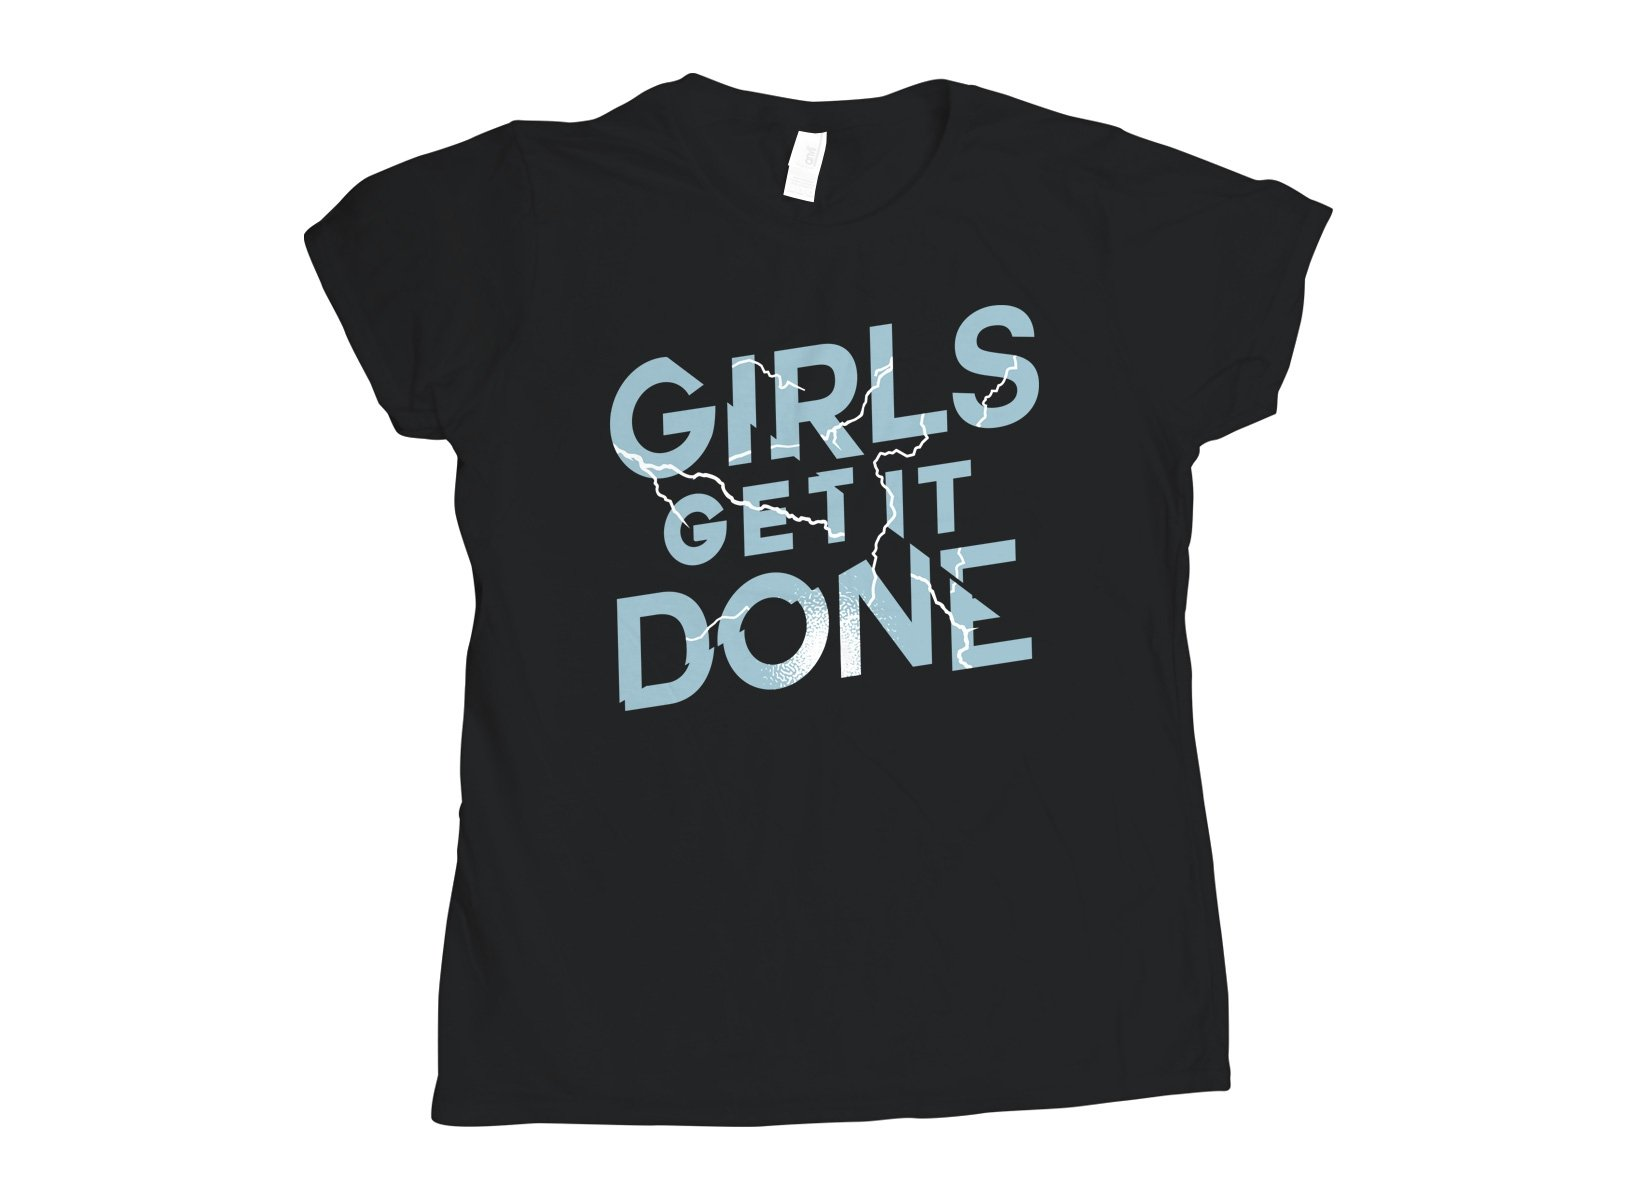 Girls Get It Done on Womens T-Shirt